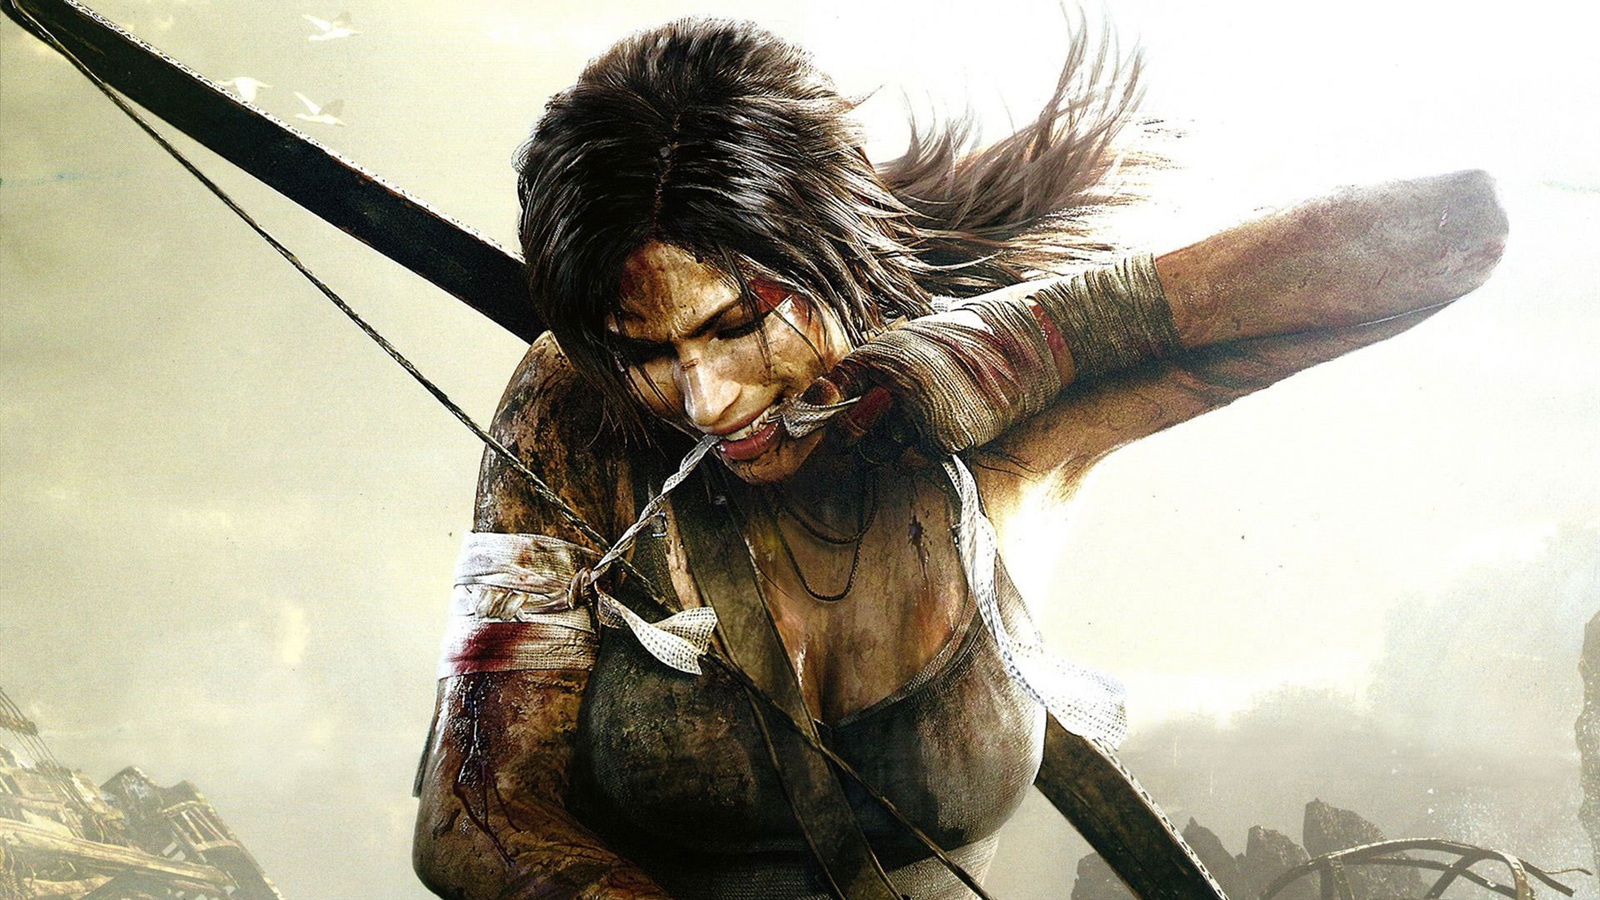 Lara Croft in Tomb Raider 9 wallpaper - 1600x900